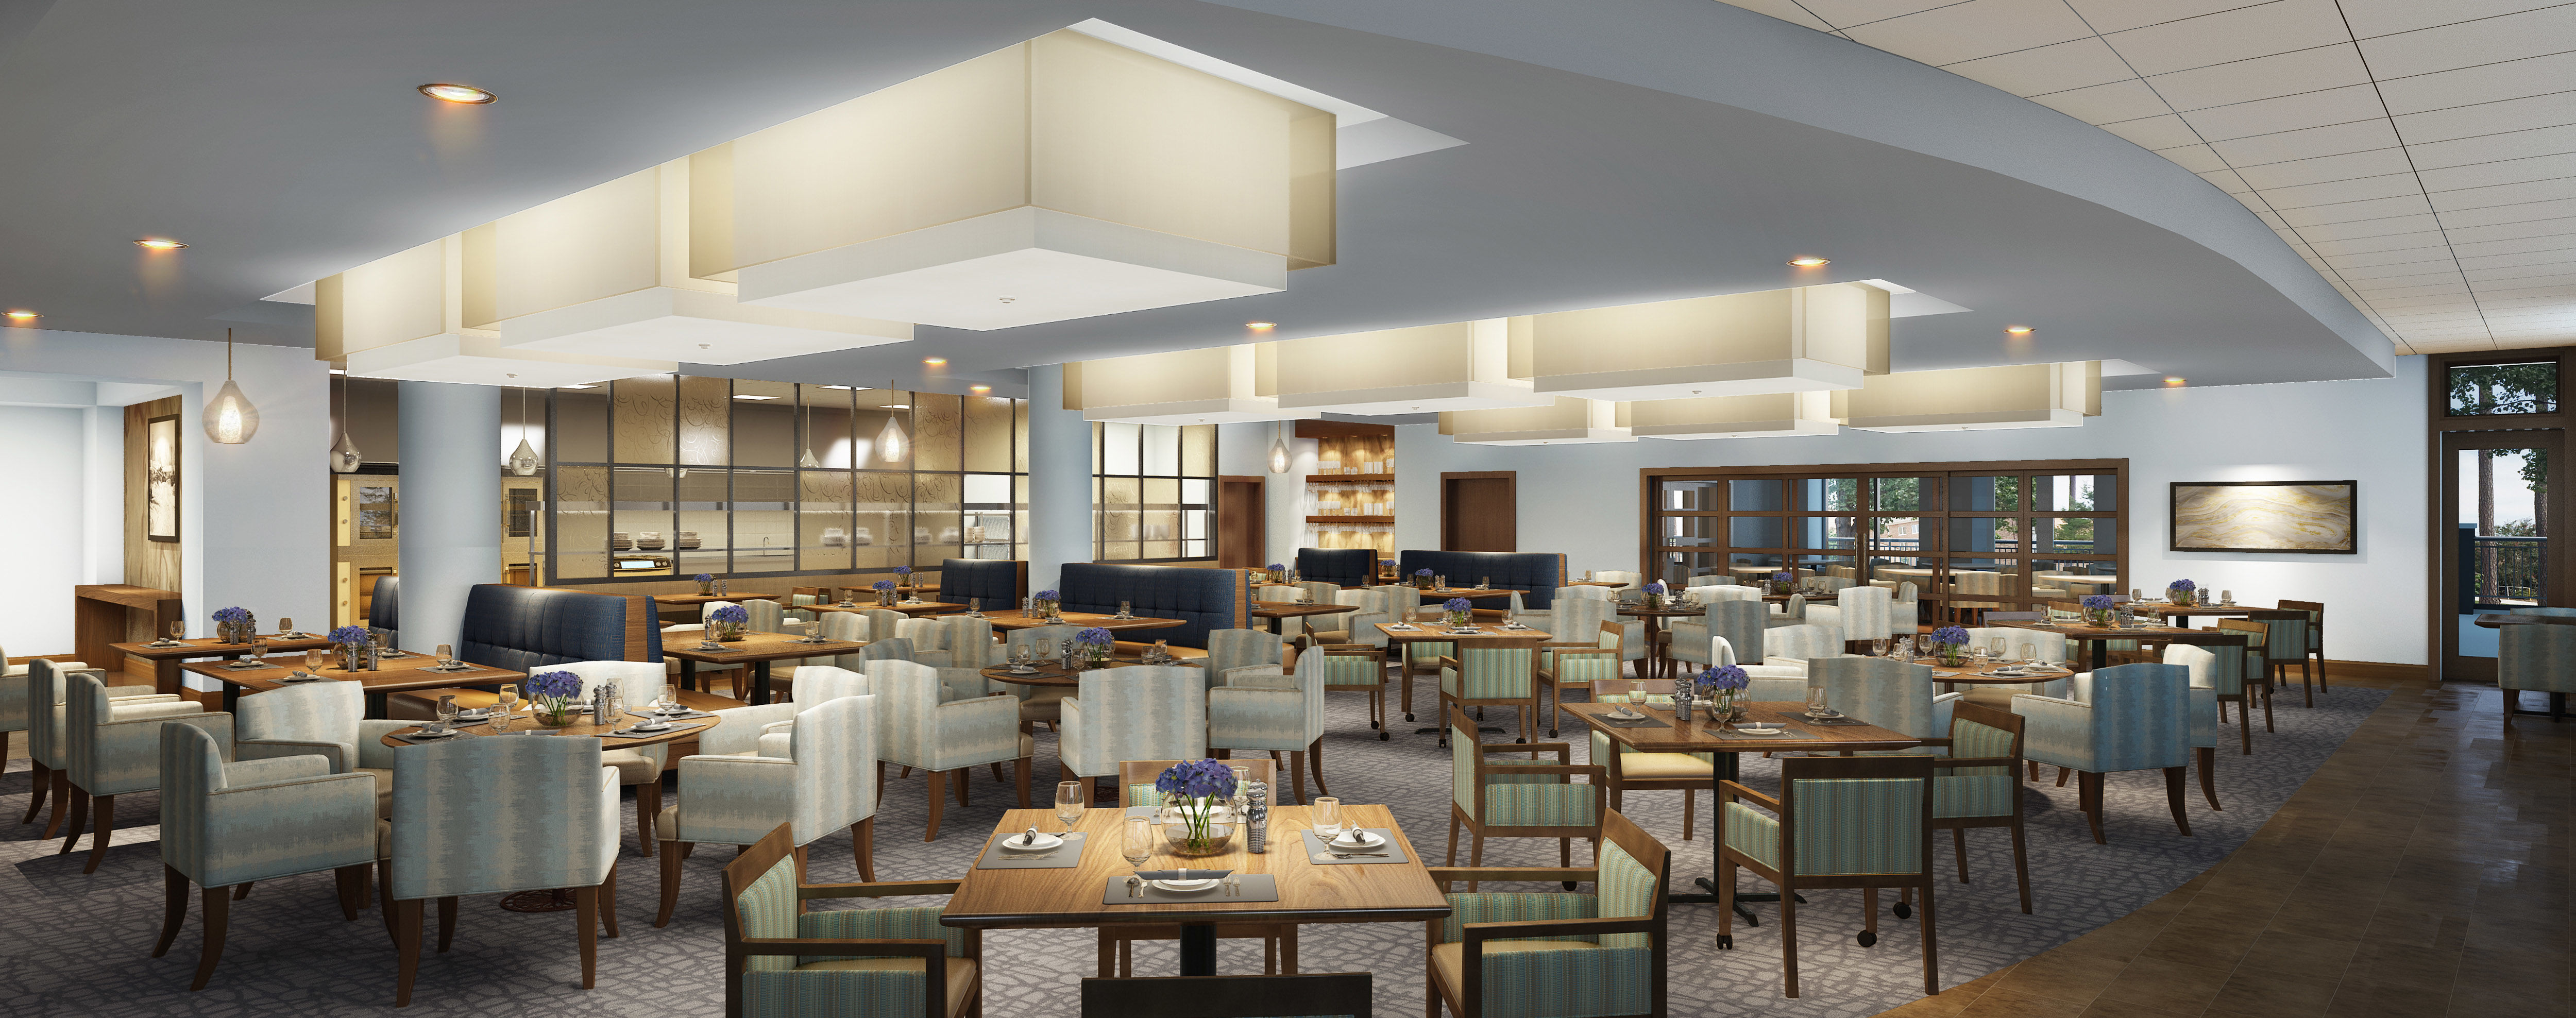 Updated Dining Room Senior Living Lakewood THW Design